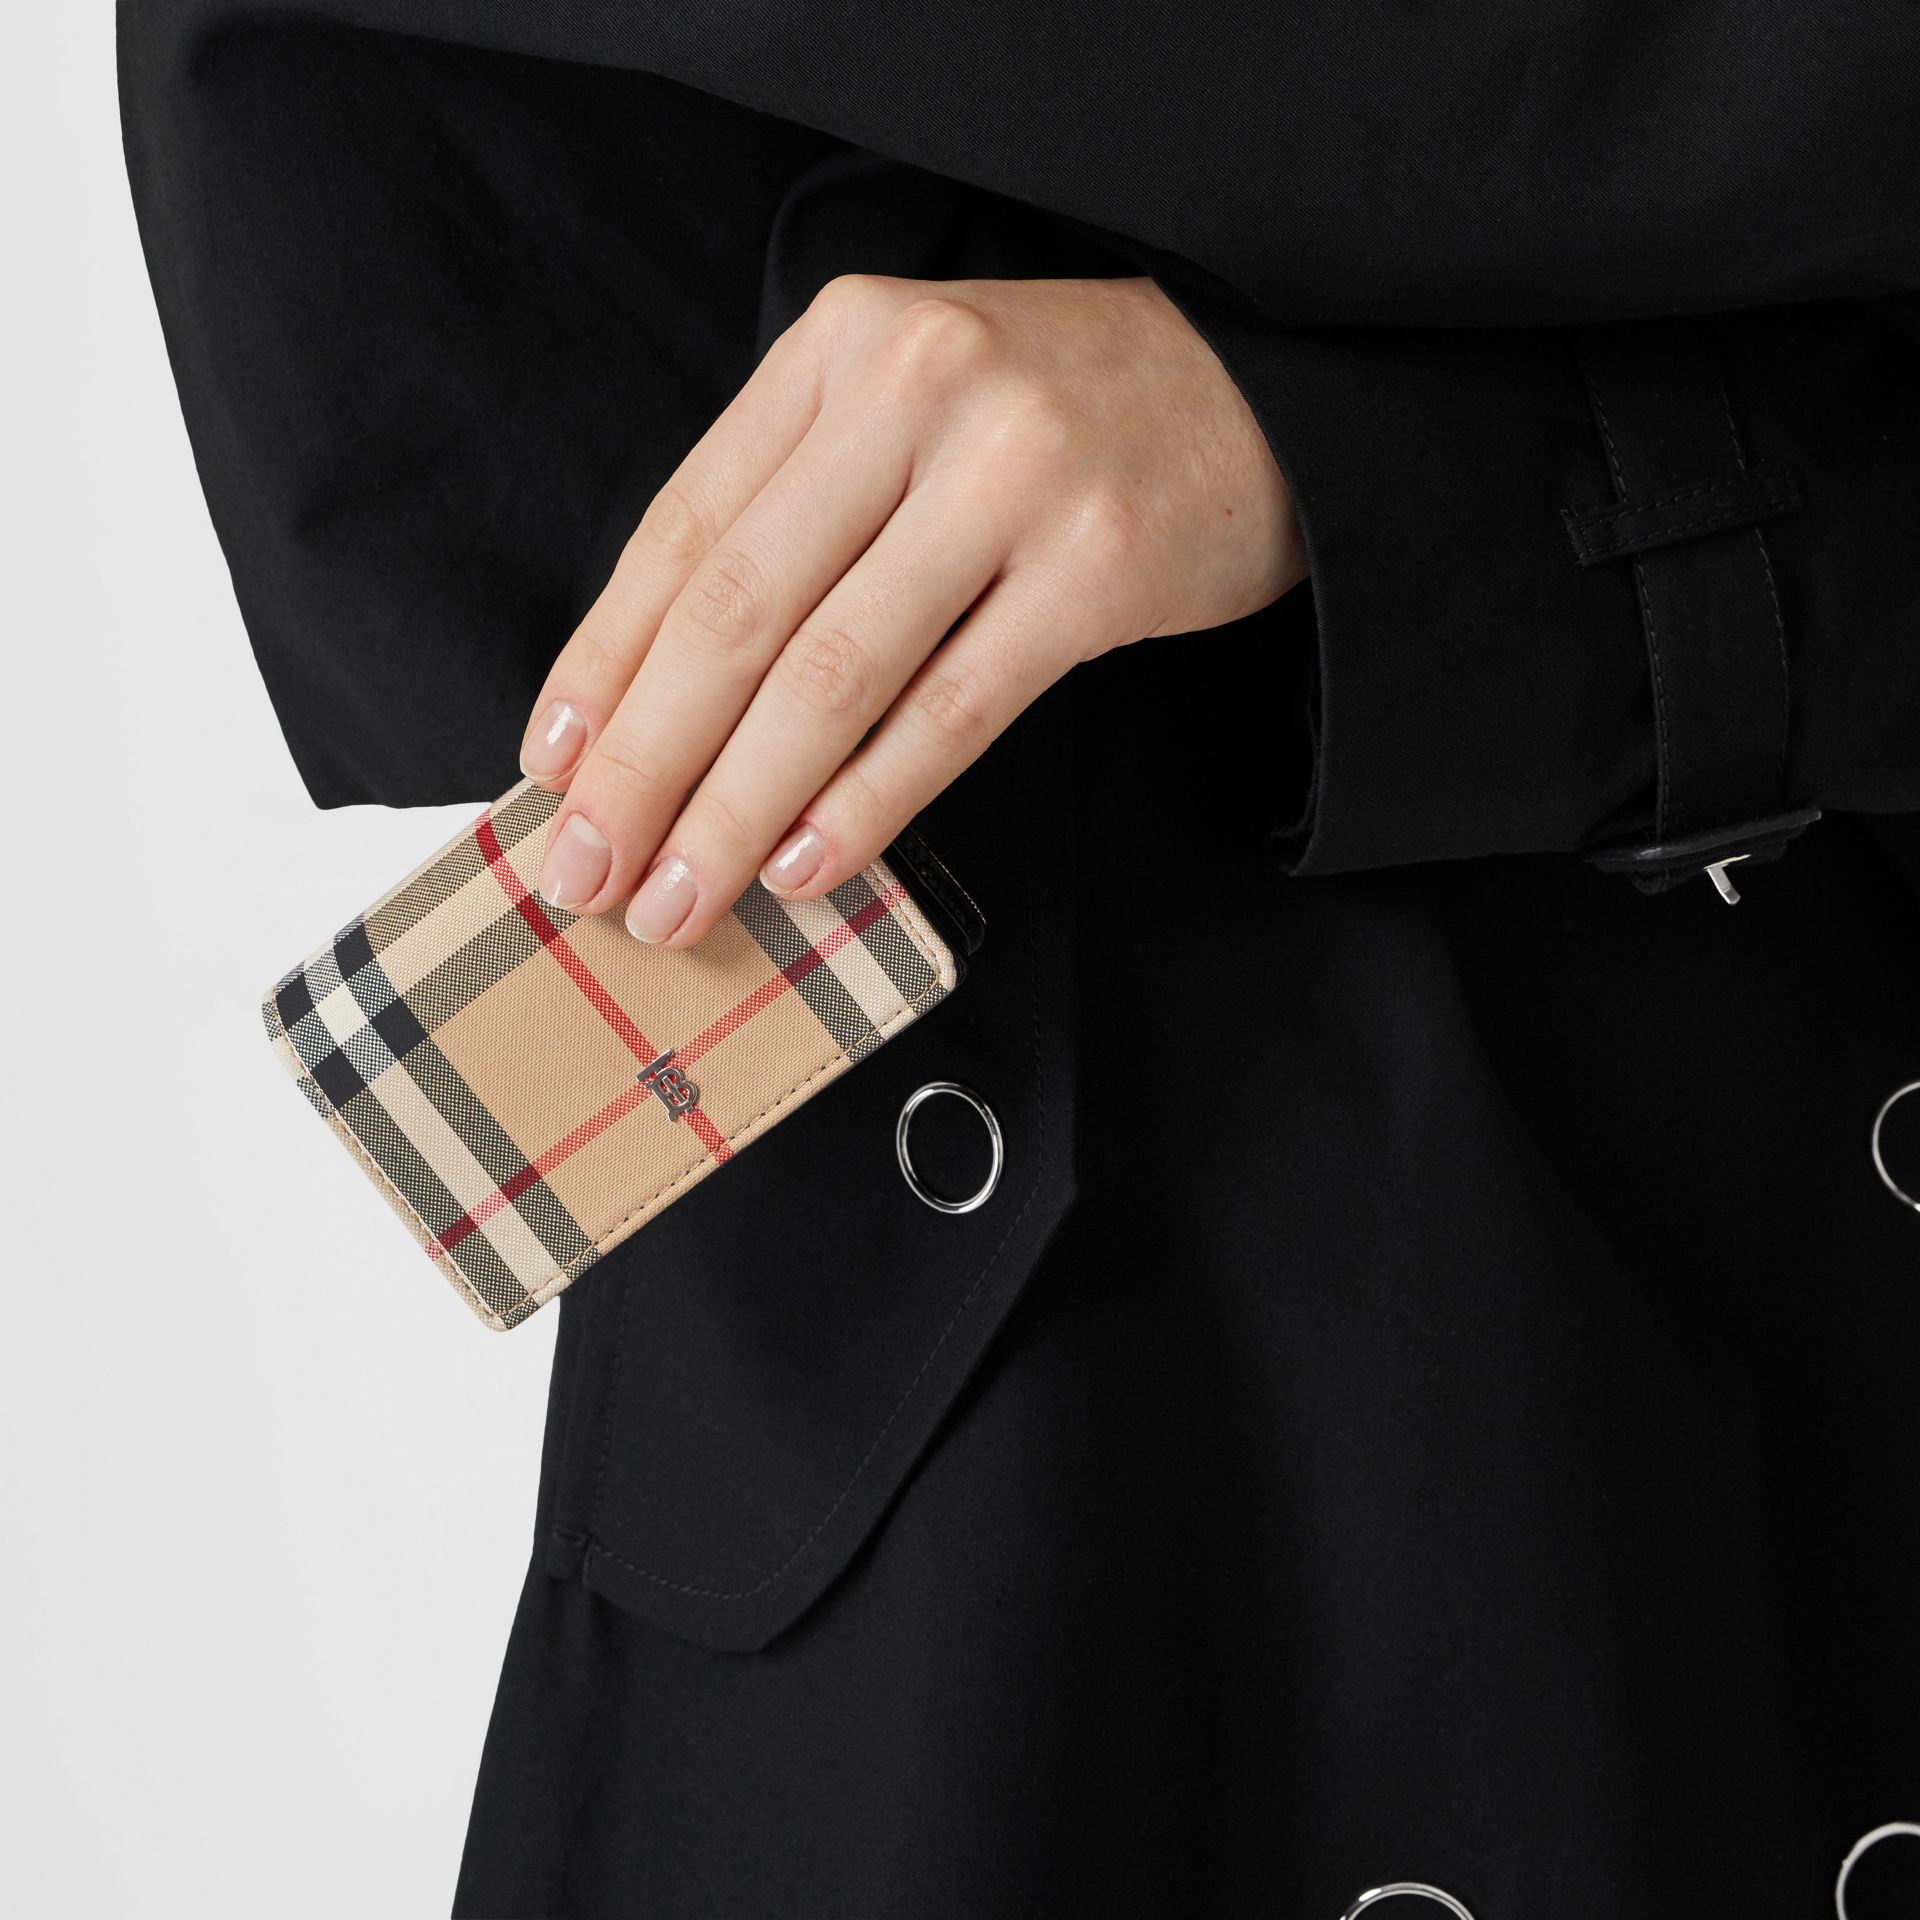 Vintage Check Card Case with Detachable Strap in Black - Women | Burberry Australia - gallery image 2